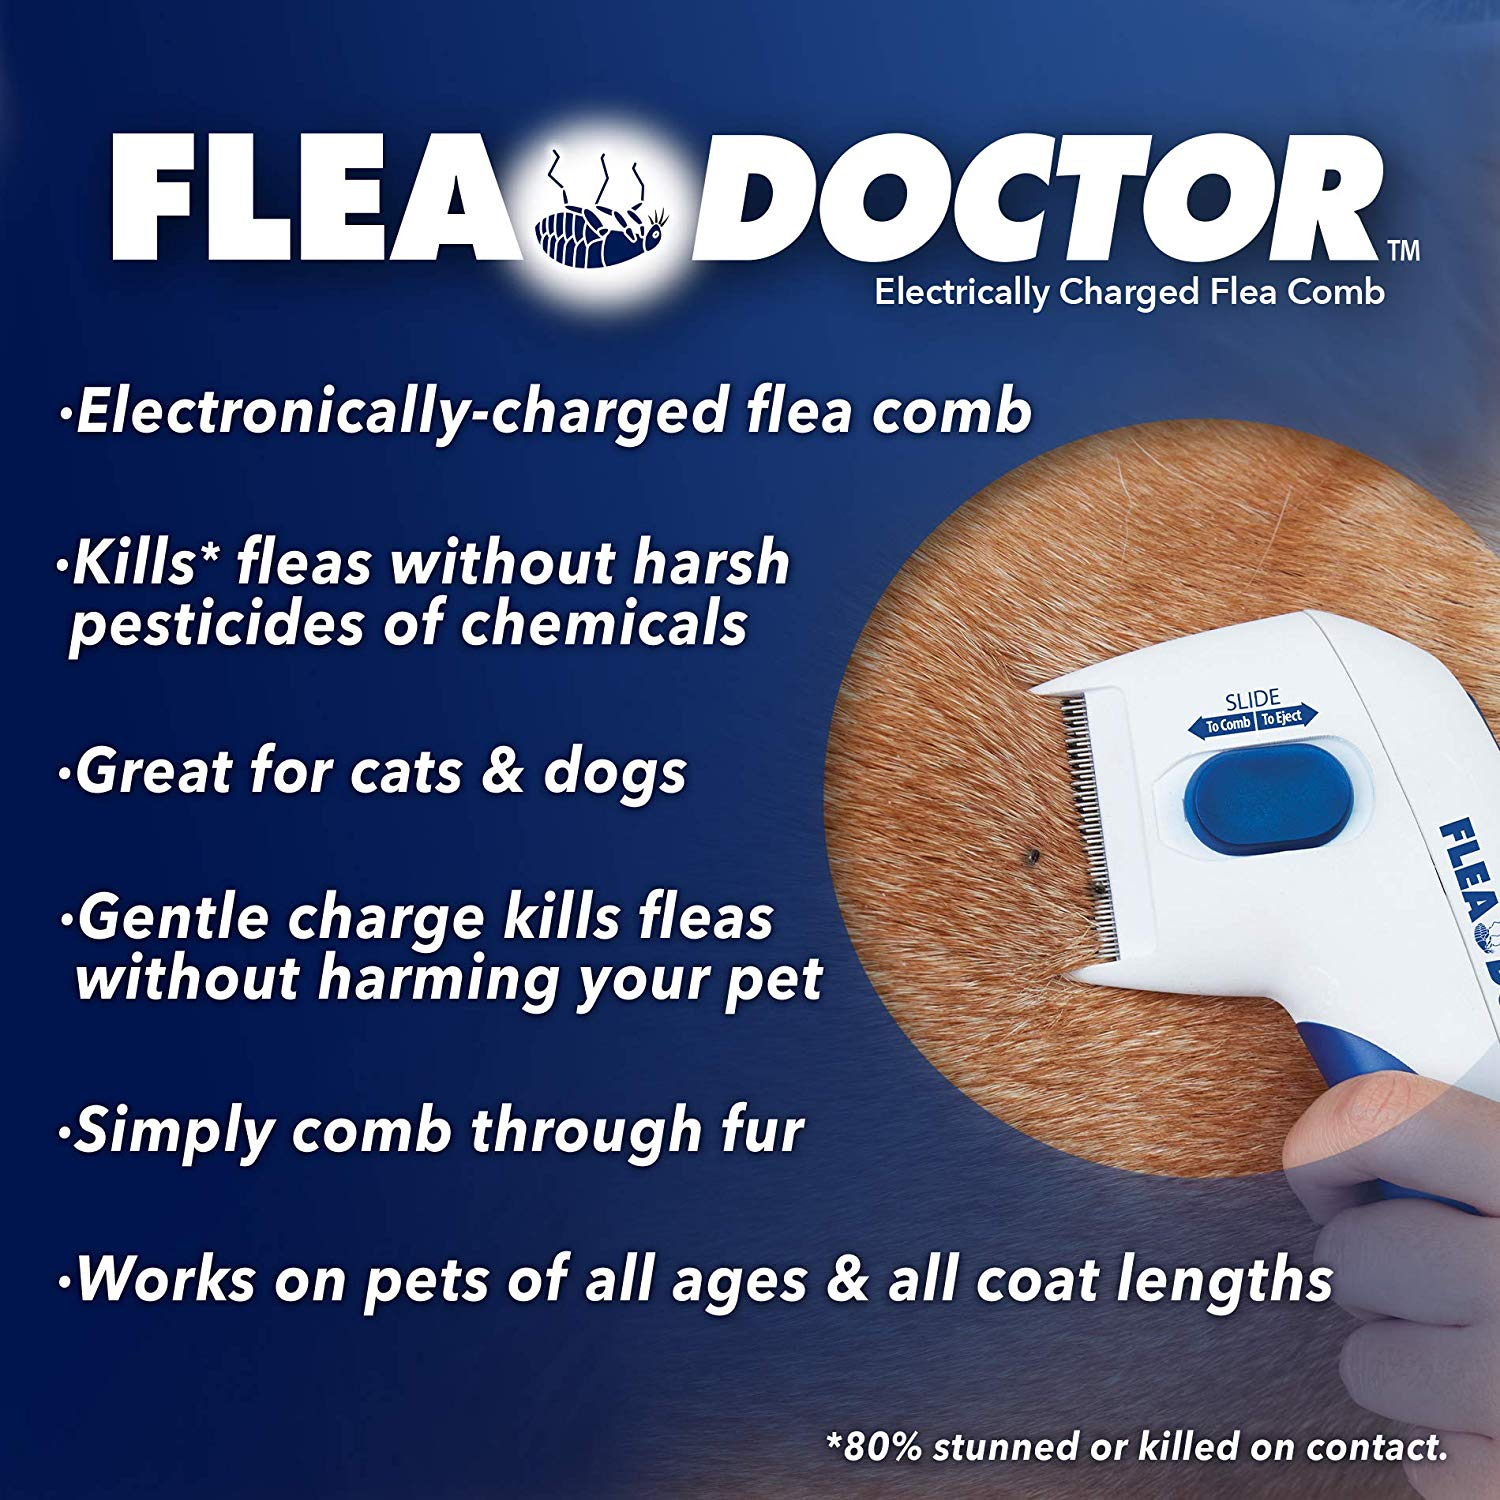 Electronic Flea Comb Perfect for Dogs & Cats, Kills & Stuns Fleas